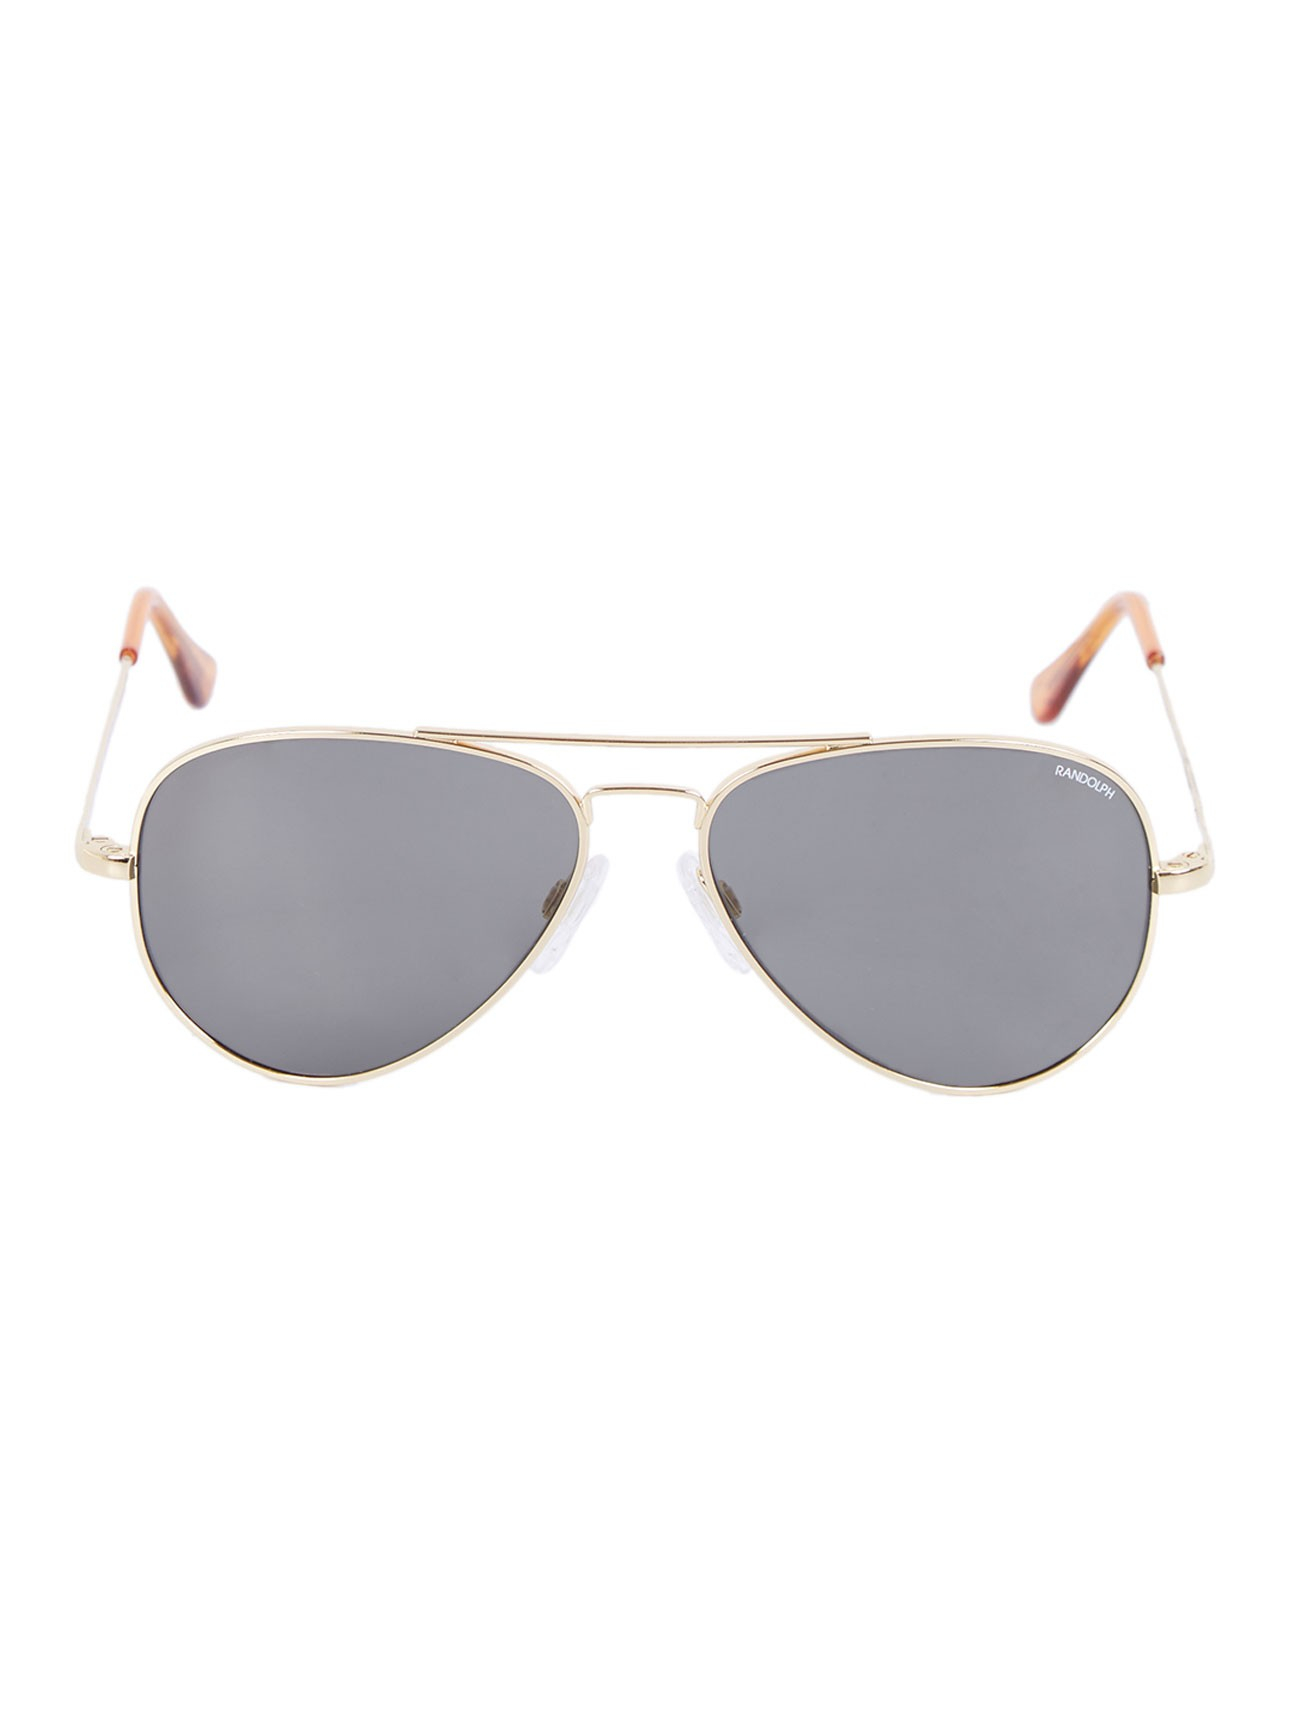 randolph engineering concord aviator sunglasses in gold